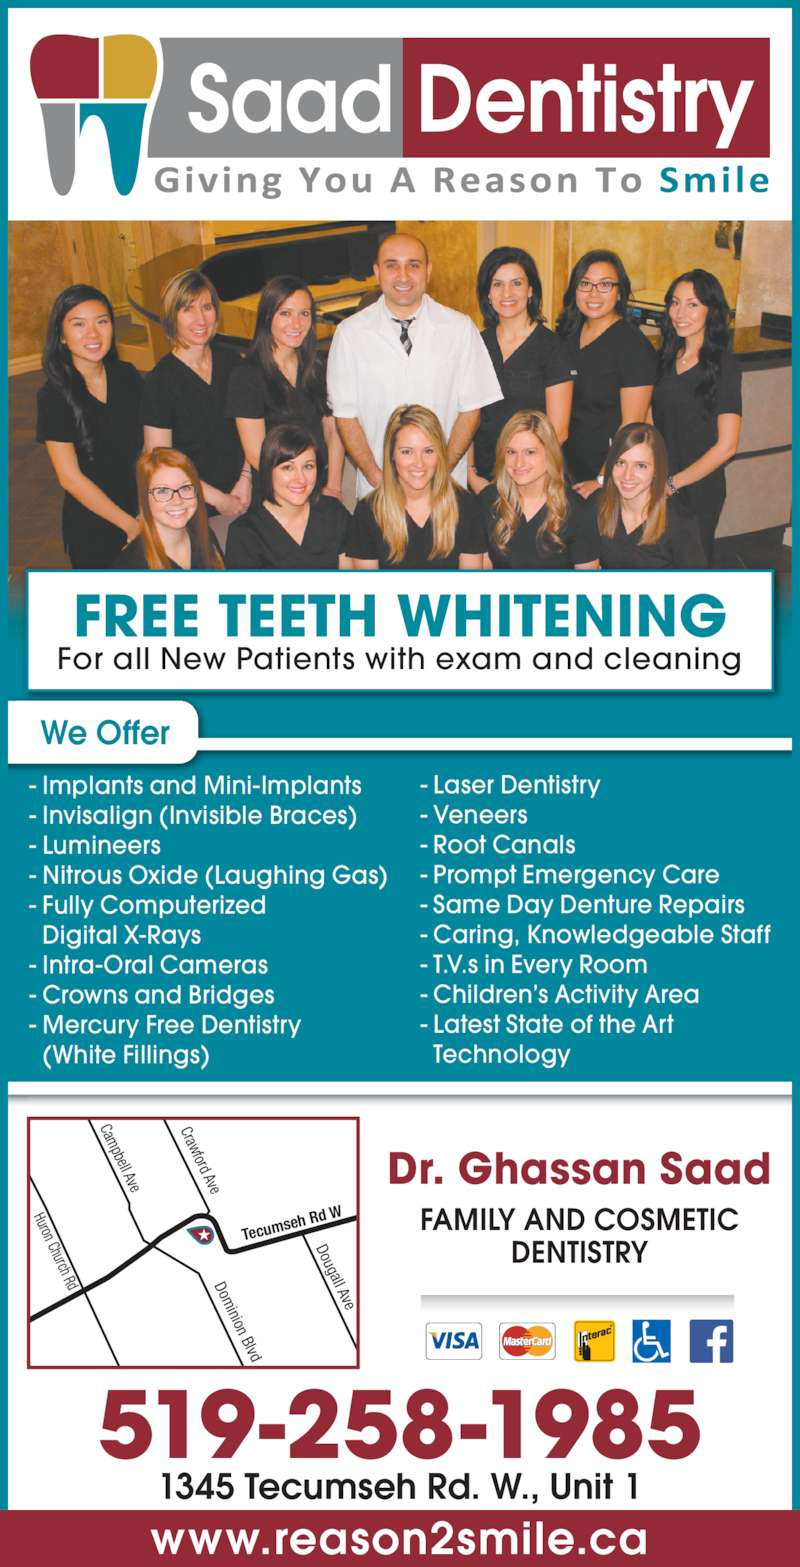 Saad Ghassan Dr (5192581985) - Display Ad - Dr. Ghassan Saad 519-258-1985 Huron Church Rd Cam pbell Ave Dom inion Blvd Crawford Ave Dougall Ave Tecum seh Rd  W 1345 Tecumseh Rd. W., Unit 1 We Offer - Implants and Mini-Implants - Invisalign (Invisible Braces) - Lumineers - Same Day Denture Repairs - Mercury Free Dentistry   (White Fillings) - Prompt Emergency Care - Laser Dentistry - Root Canals - Veneers   Digital X-Rays - Intra-Oral Cameras - Crowns and Bridges - Fully Computerized - Nitrous Oxide (Laughing Gas)   Technology FAMILY AND COSMETIC DENTISTRY FREE TEETH WHITENING For all New Patients with exam and cleaning - Latest State of the Art www.reason2smile.ca - Caring, Knowledgeable Staff - T.V.s in Every Room - Children's Activity Area